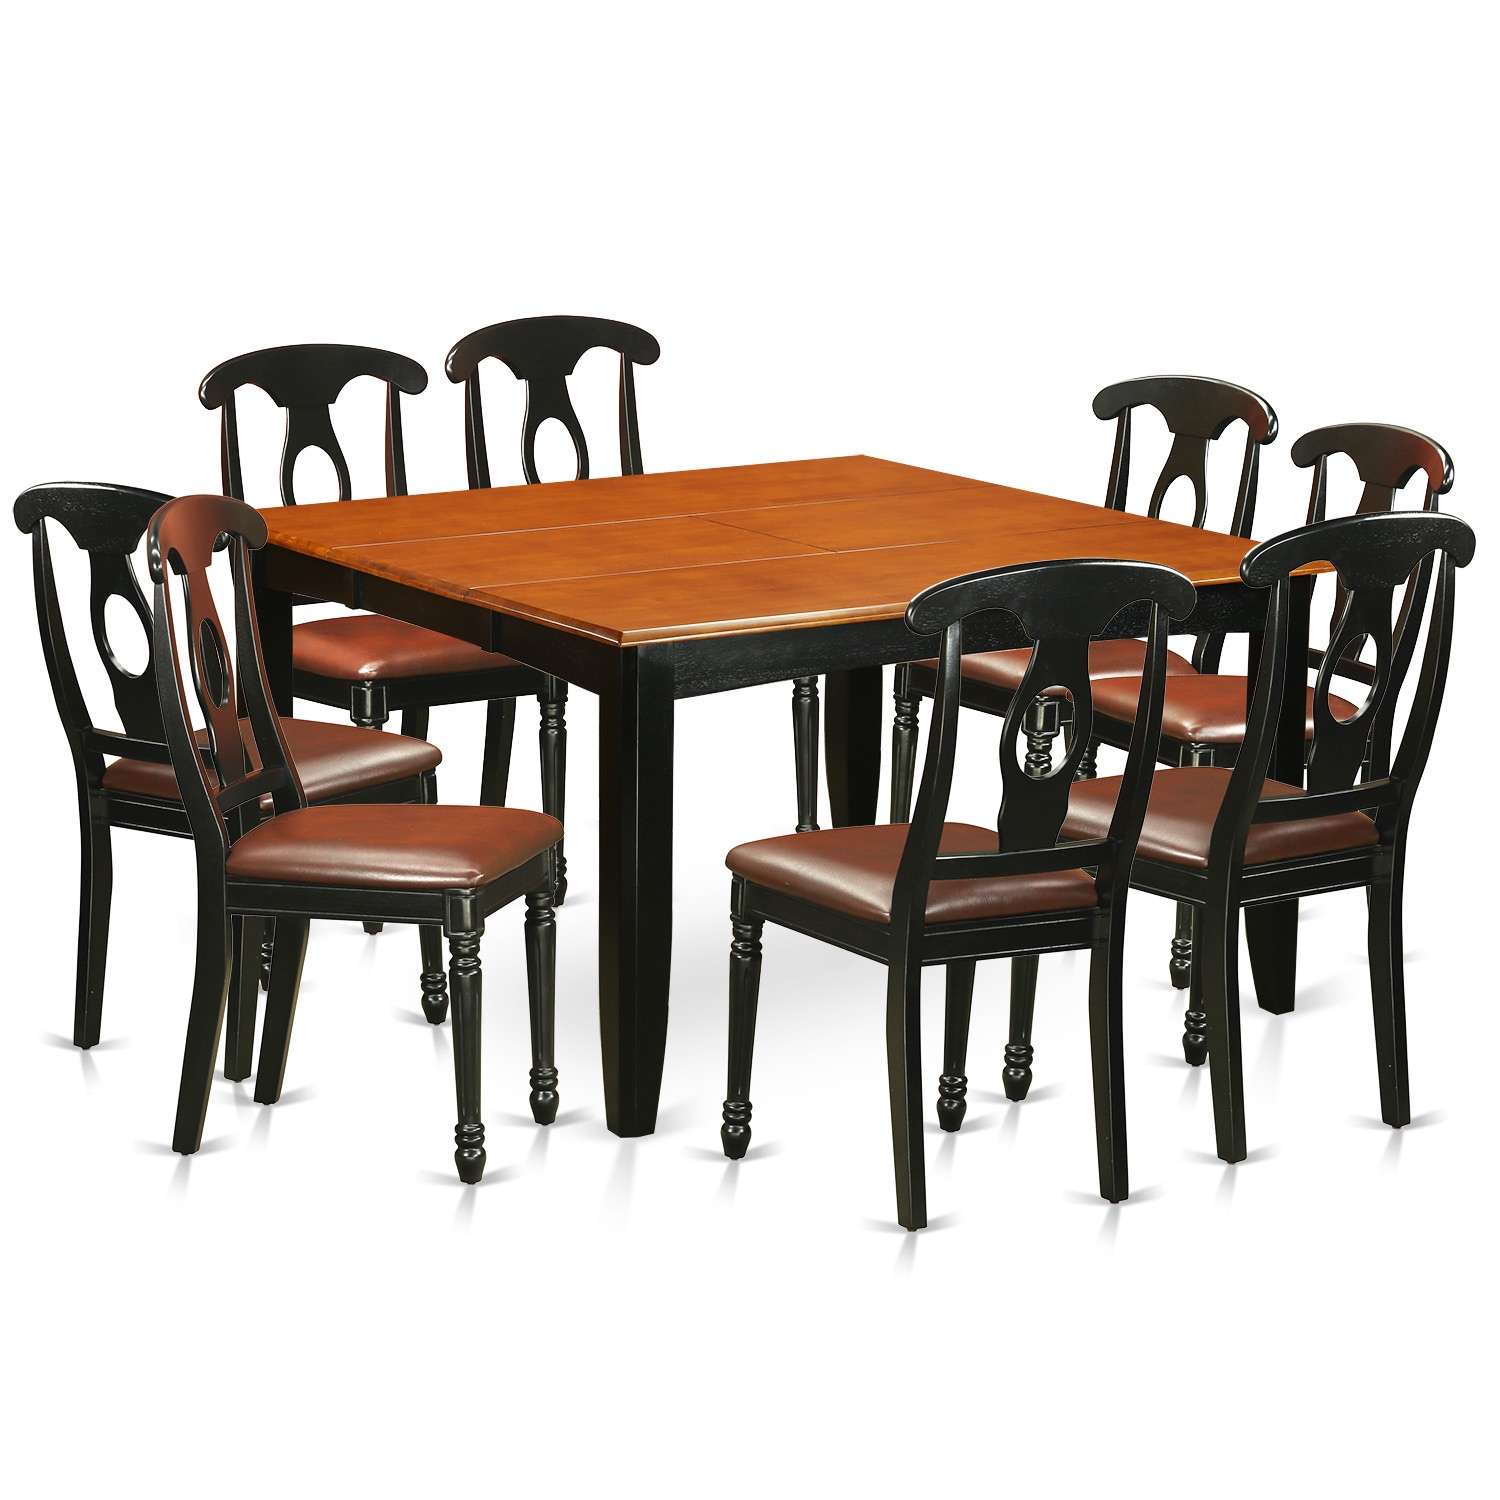 Shop pfke9 bch black cherry rubberwood dining table and 8 solid chairs free shipping today overstock com 11967735